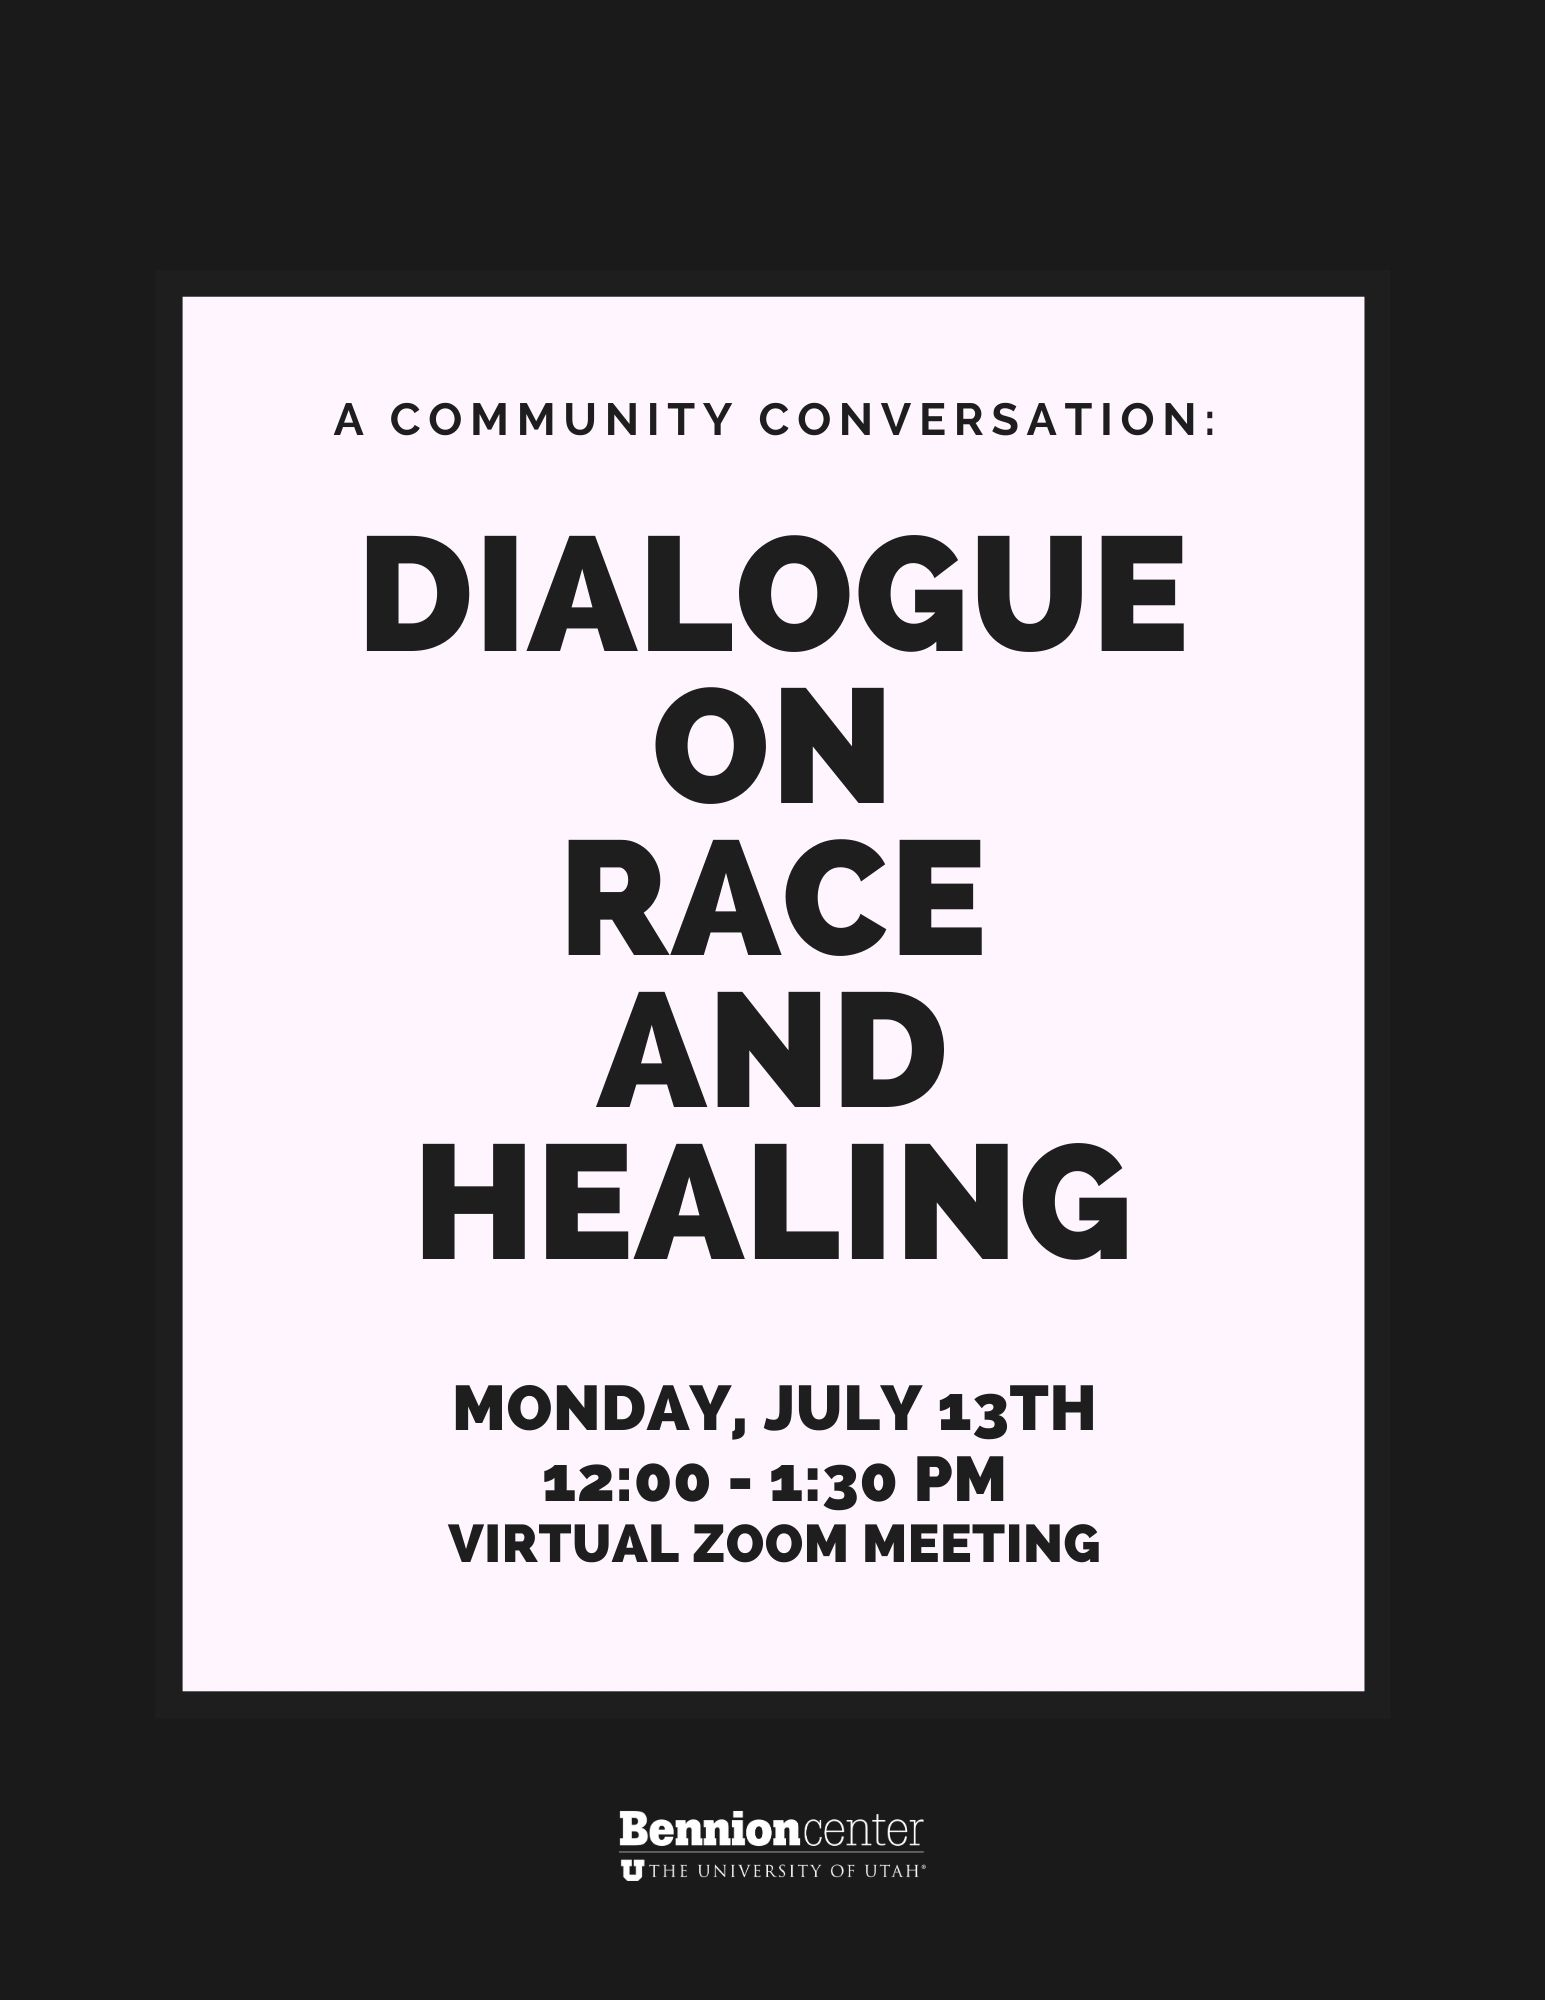 A Community Conversation: dialogue on Race and Healing; Monday, July 13th, 12:00 - 1:30 pm; virtual zoom meeting